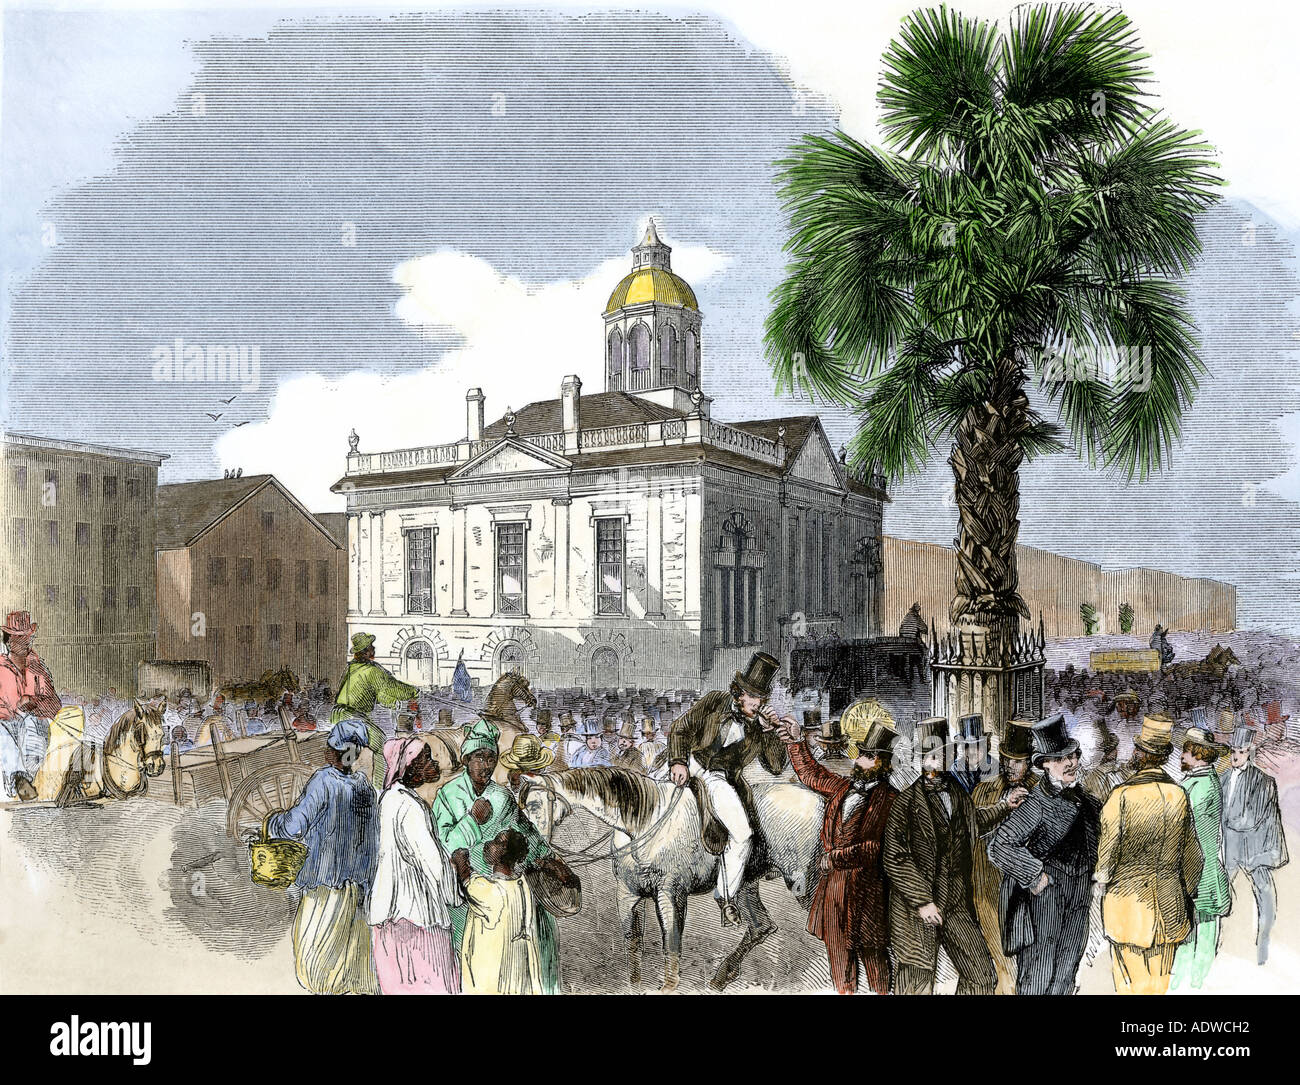 Old Custom House in Charleston South Carolina just before the Civil War 1860. Hand-colored woodcut - Stock Image